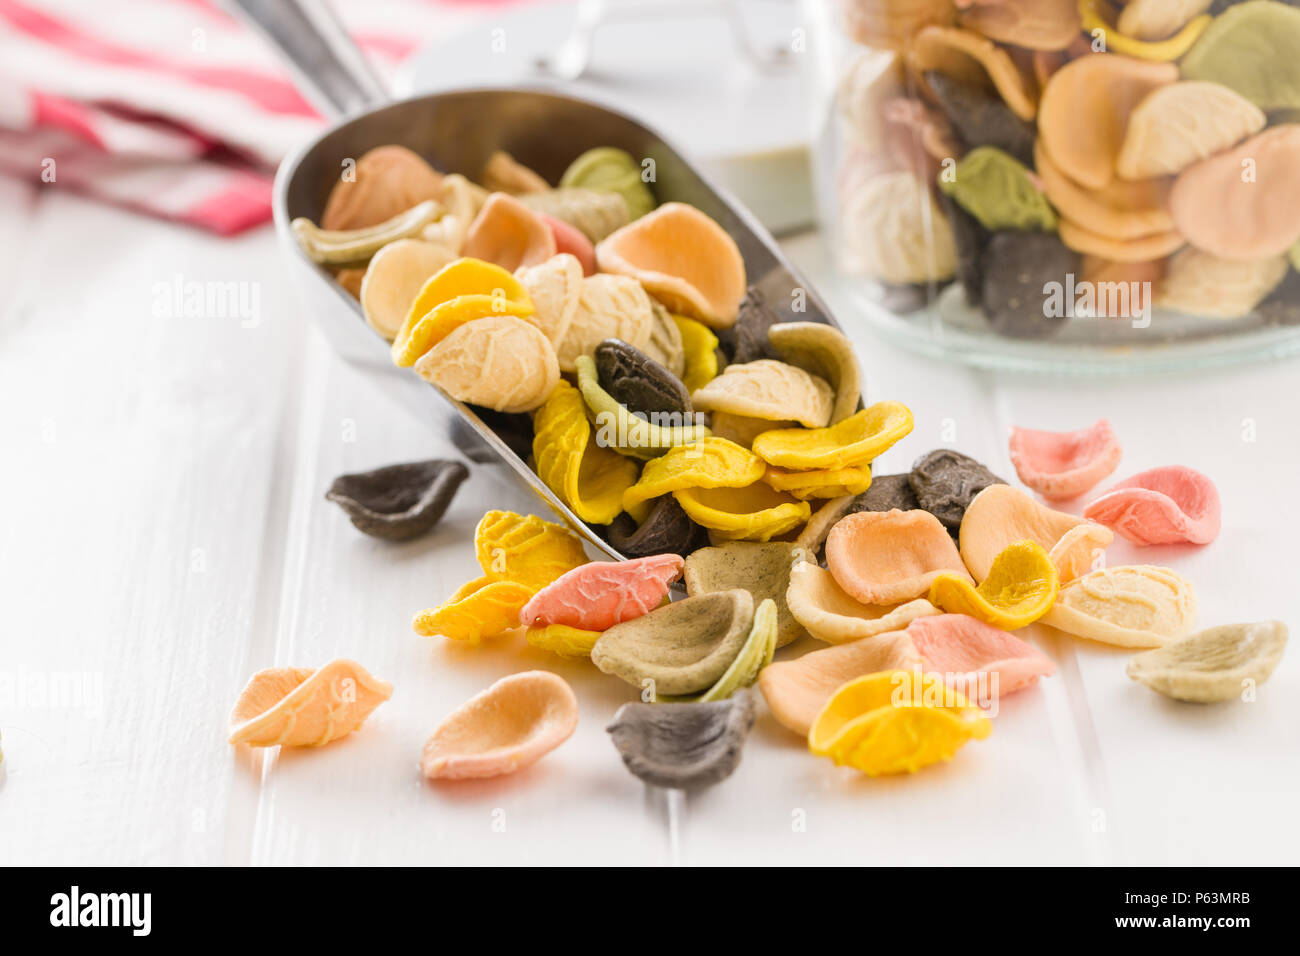 Italian rainbow pasta in scoop. - Stock Image